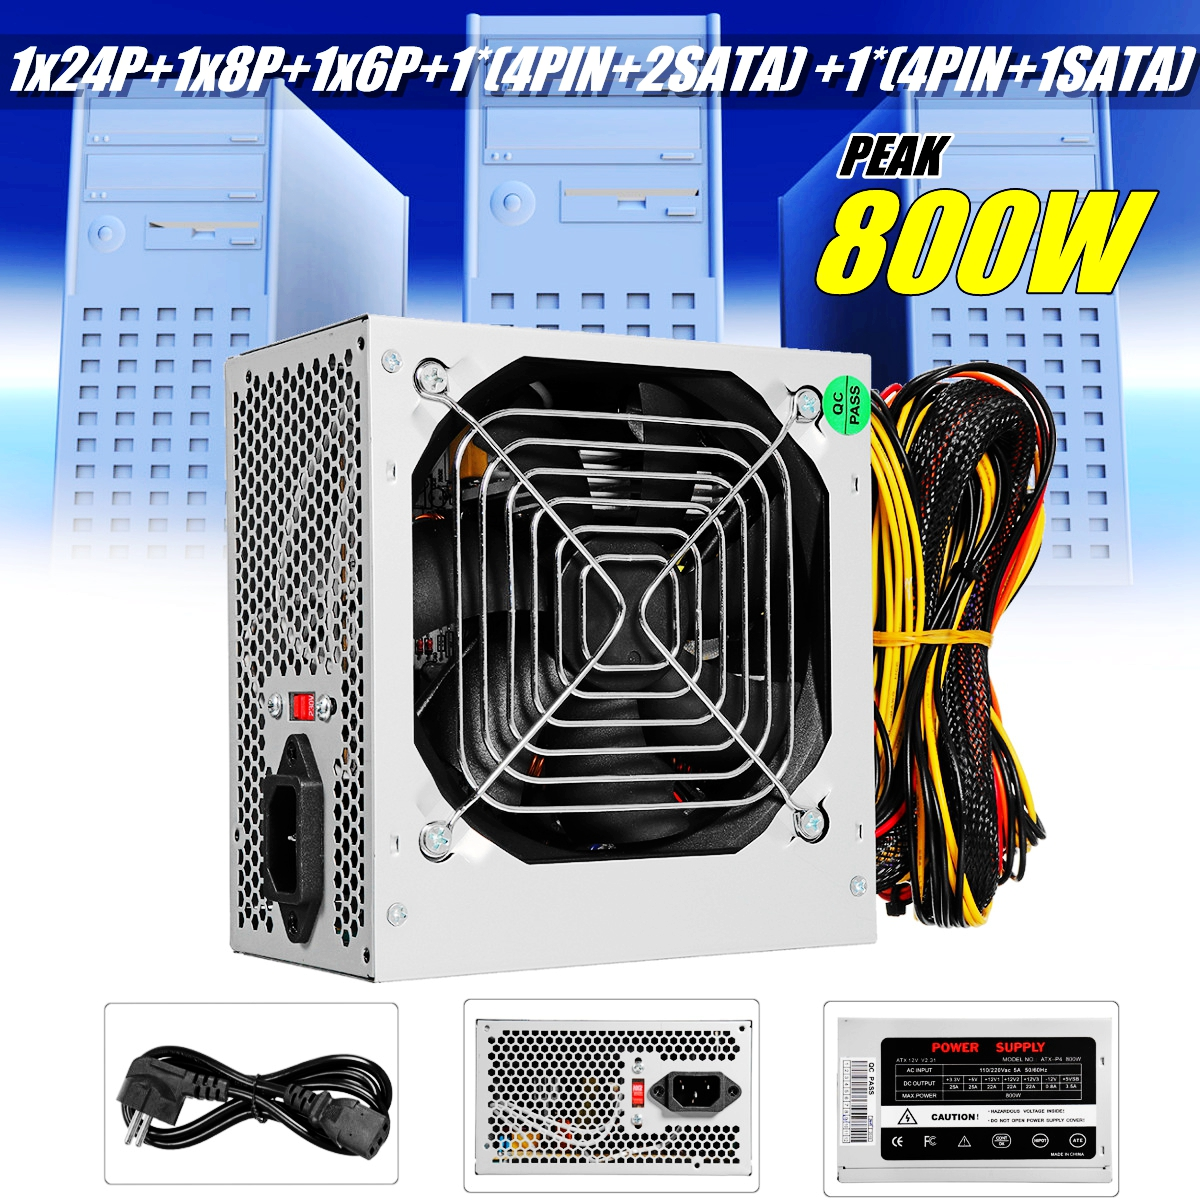 Silver Max 800W Power Supply PSU PFC Silent Fan ATX 24-PIN 12V PC Computer SATA Gaming PC Power Supply For Intel AMD Computer silver max 500w psu pfc atx 12v 24pin sata gaming pc power supply for intel amd computer power supply for btc